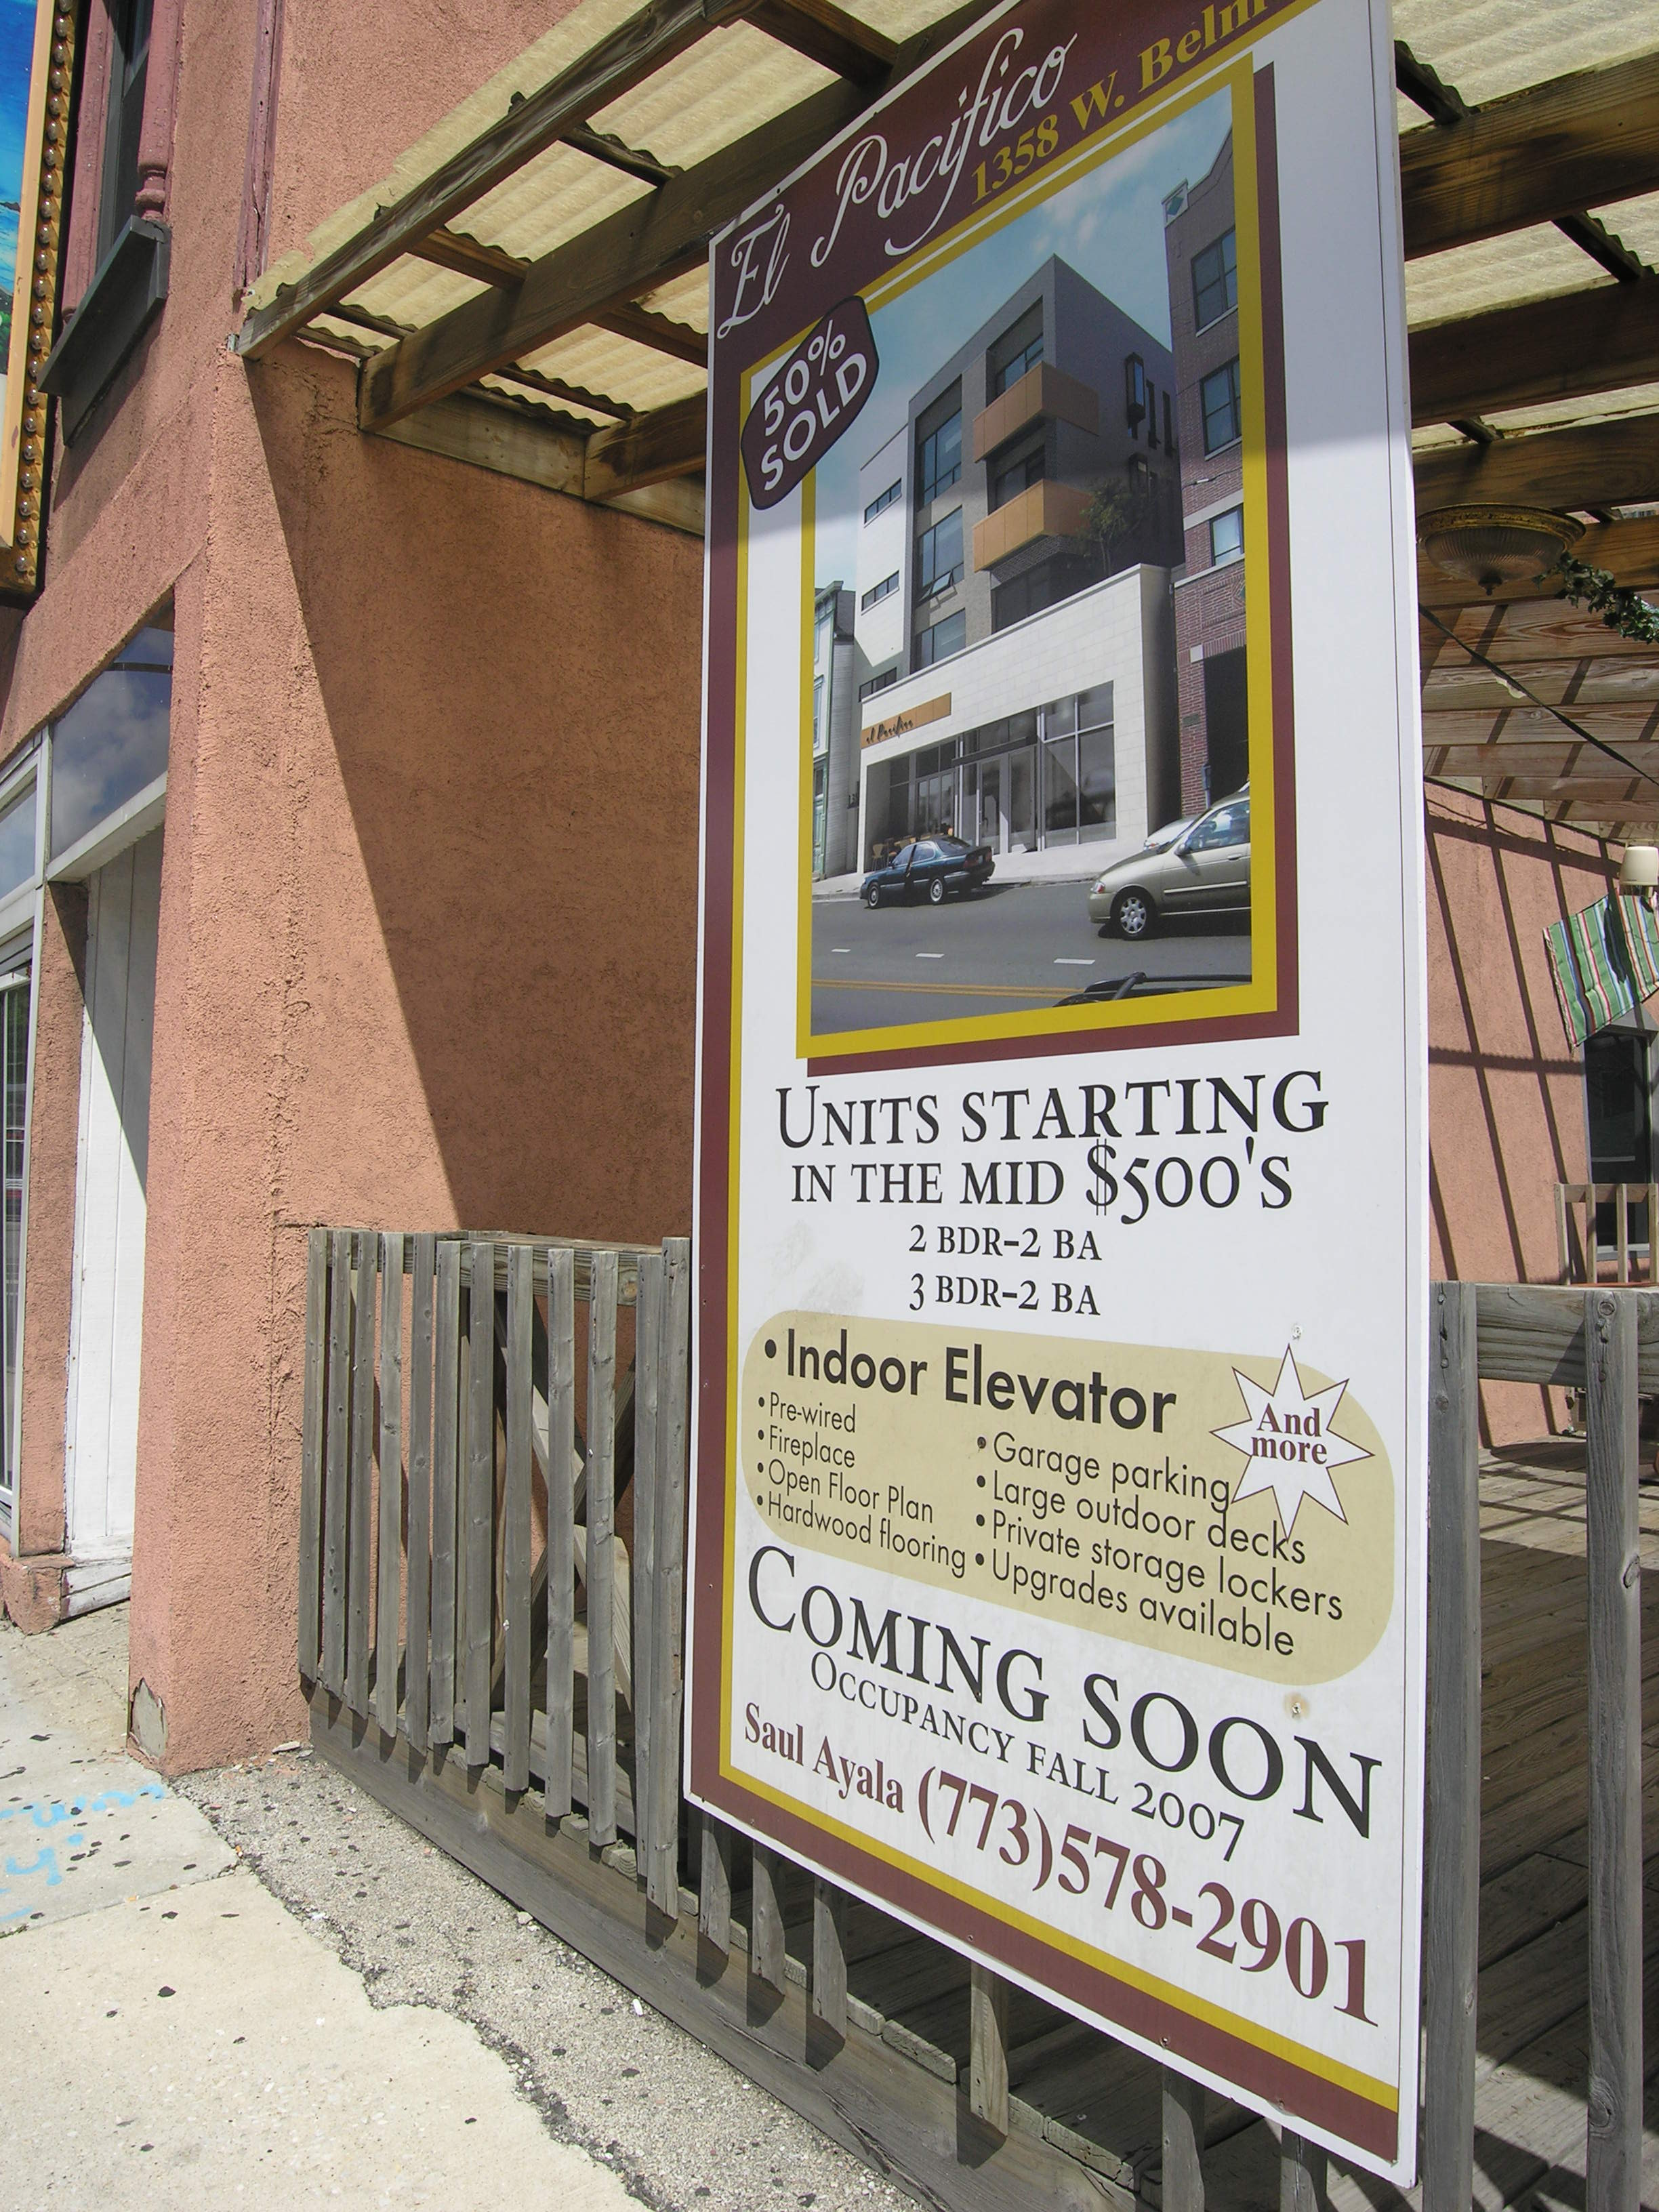 Update: construction on El Pacifico to begin in August